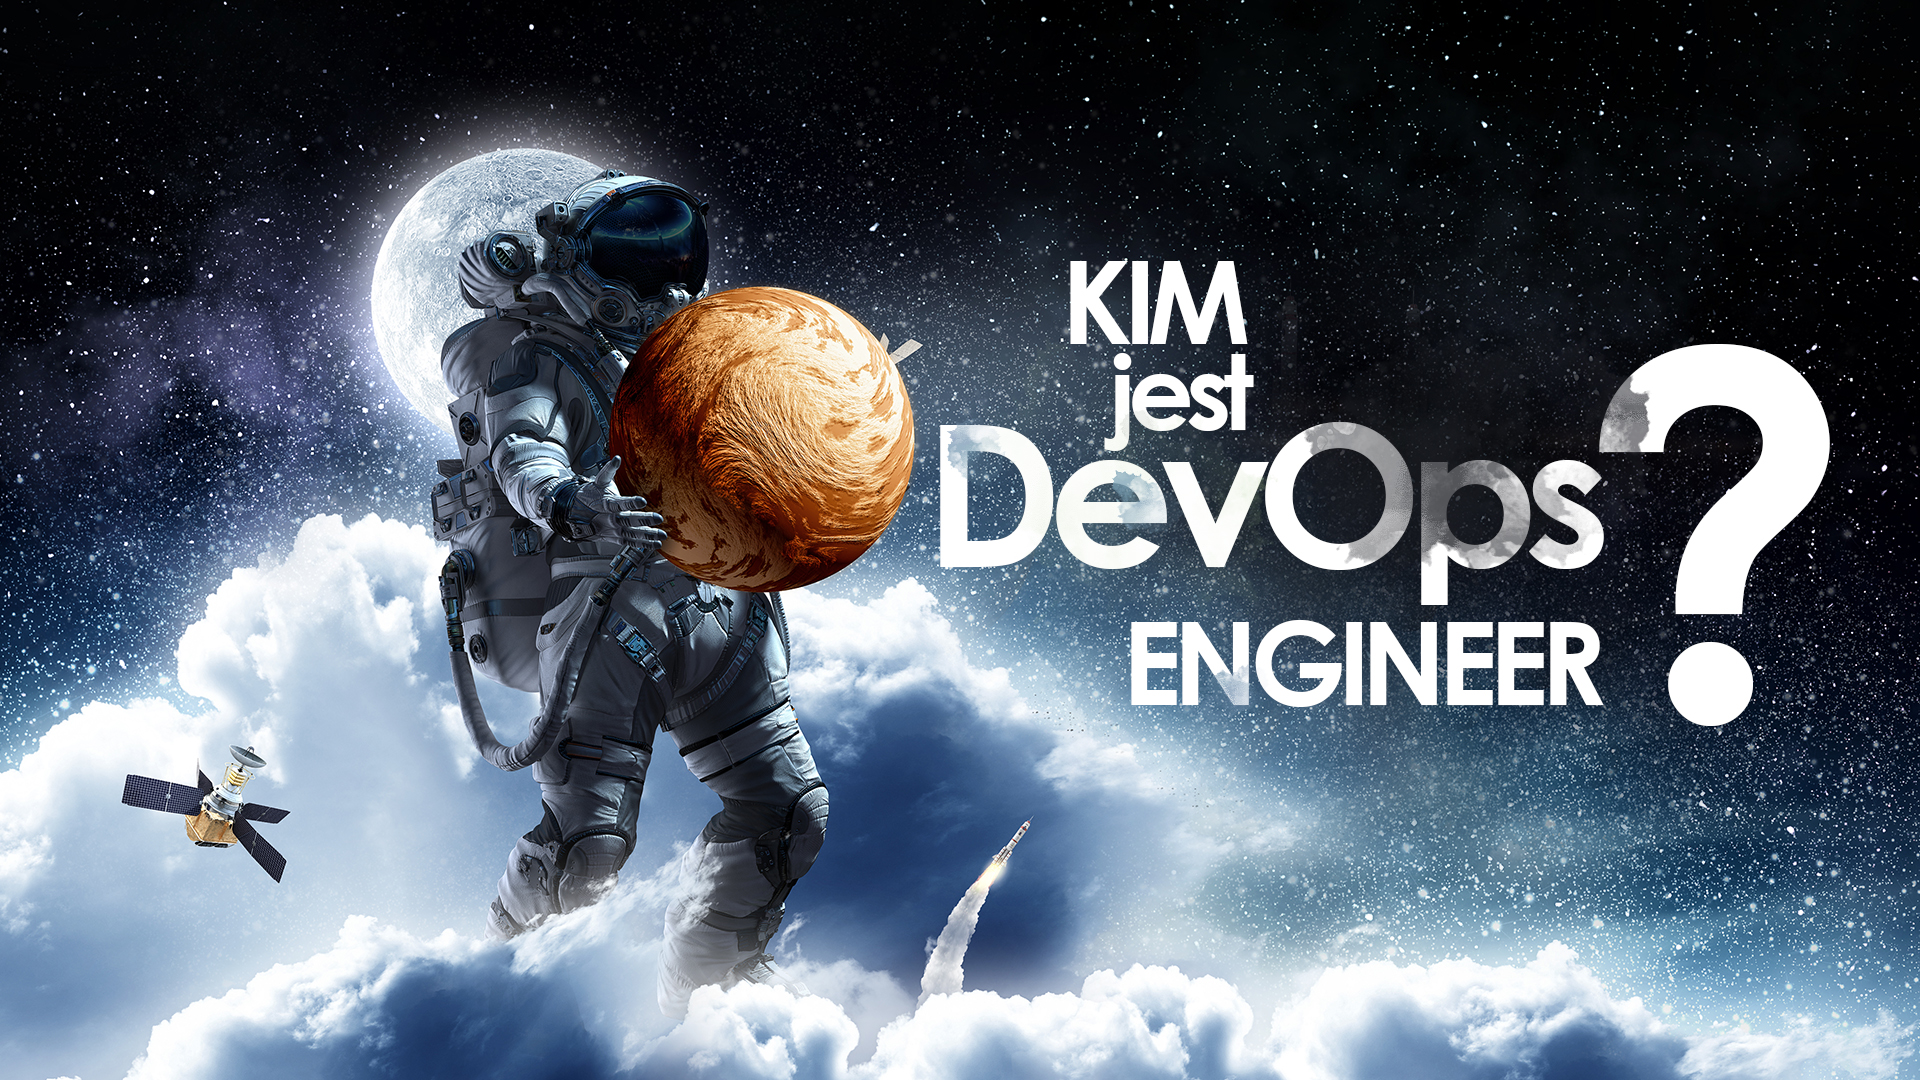 Kim jest DevOps Engineer?